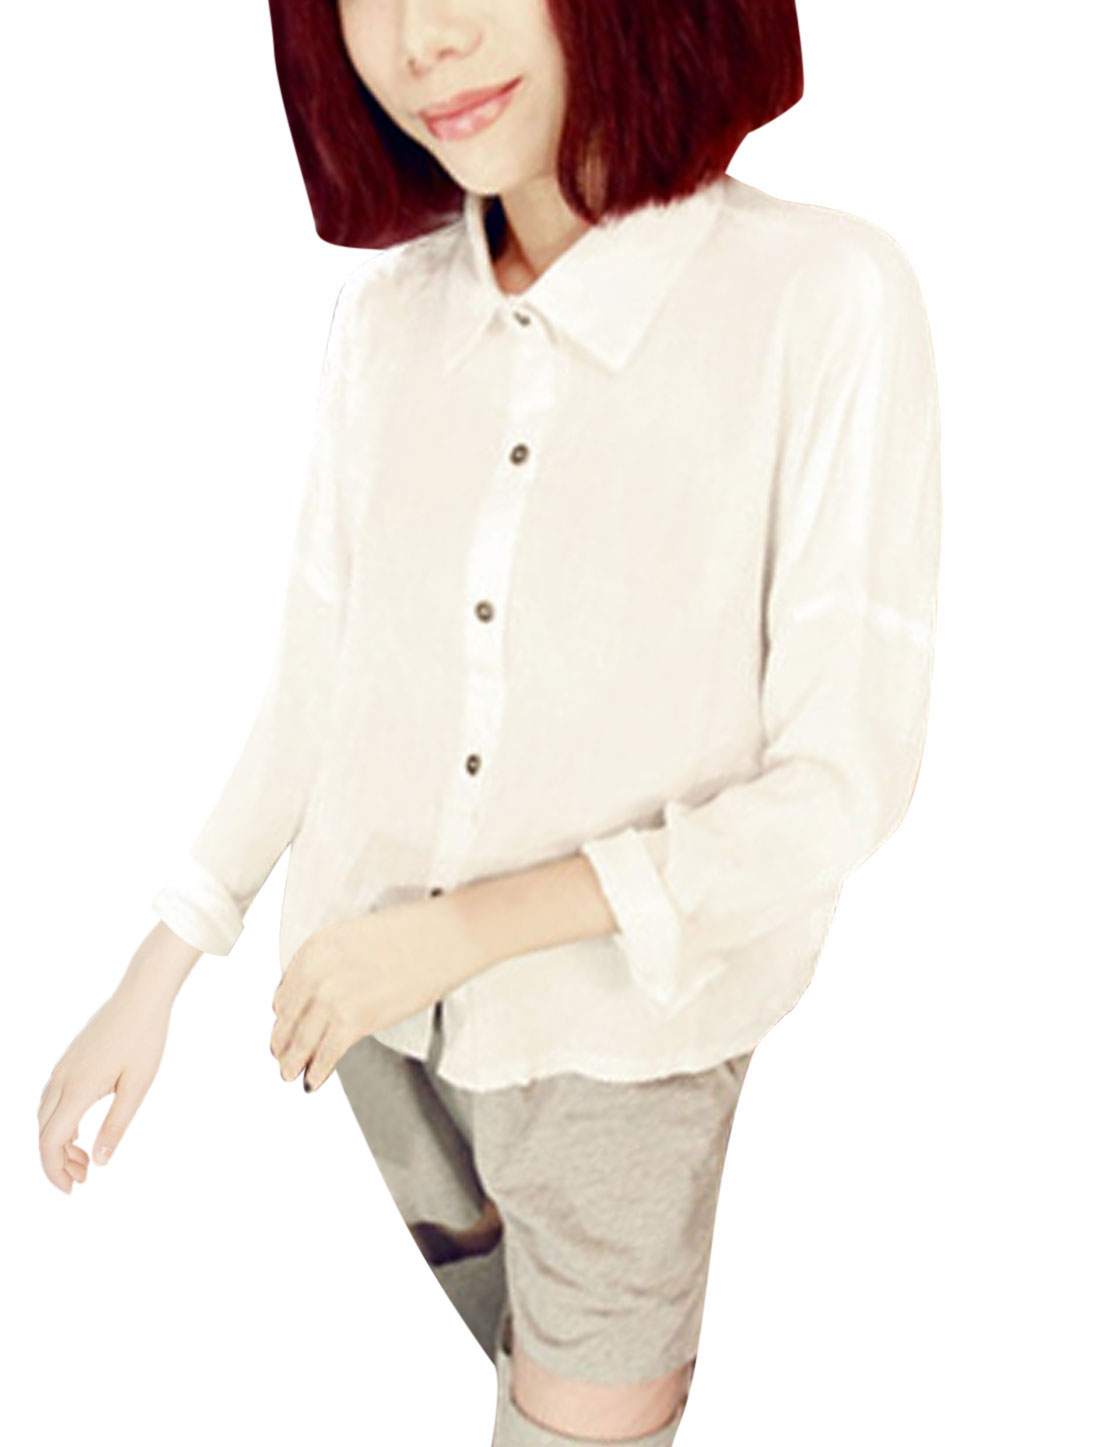 Lady Point Collar Single Breasted Fashion Casual Shirt White XS